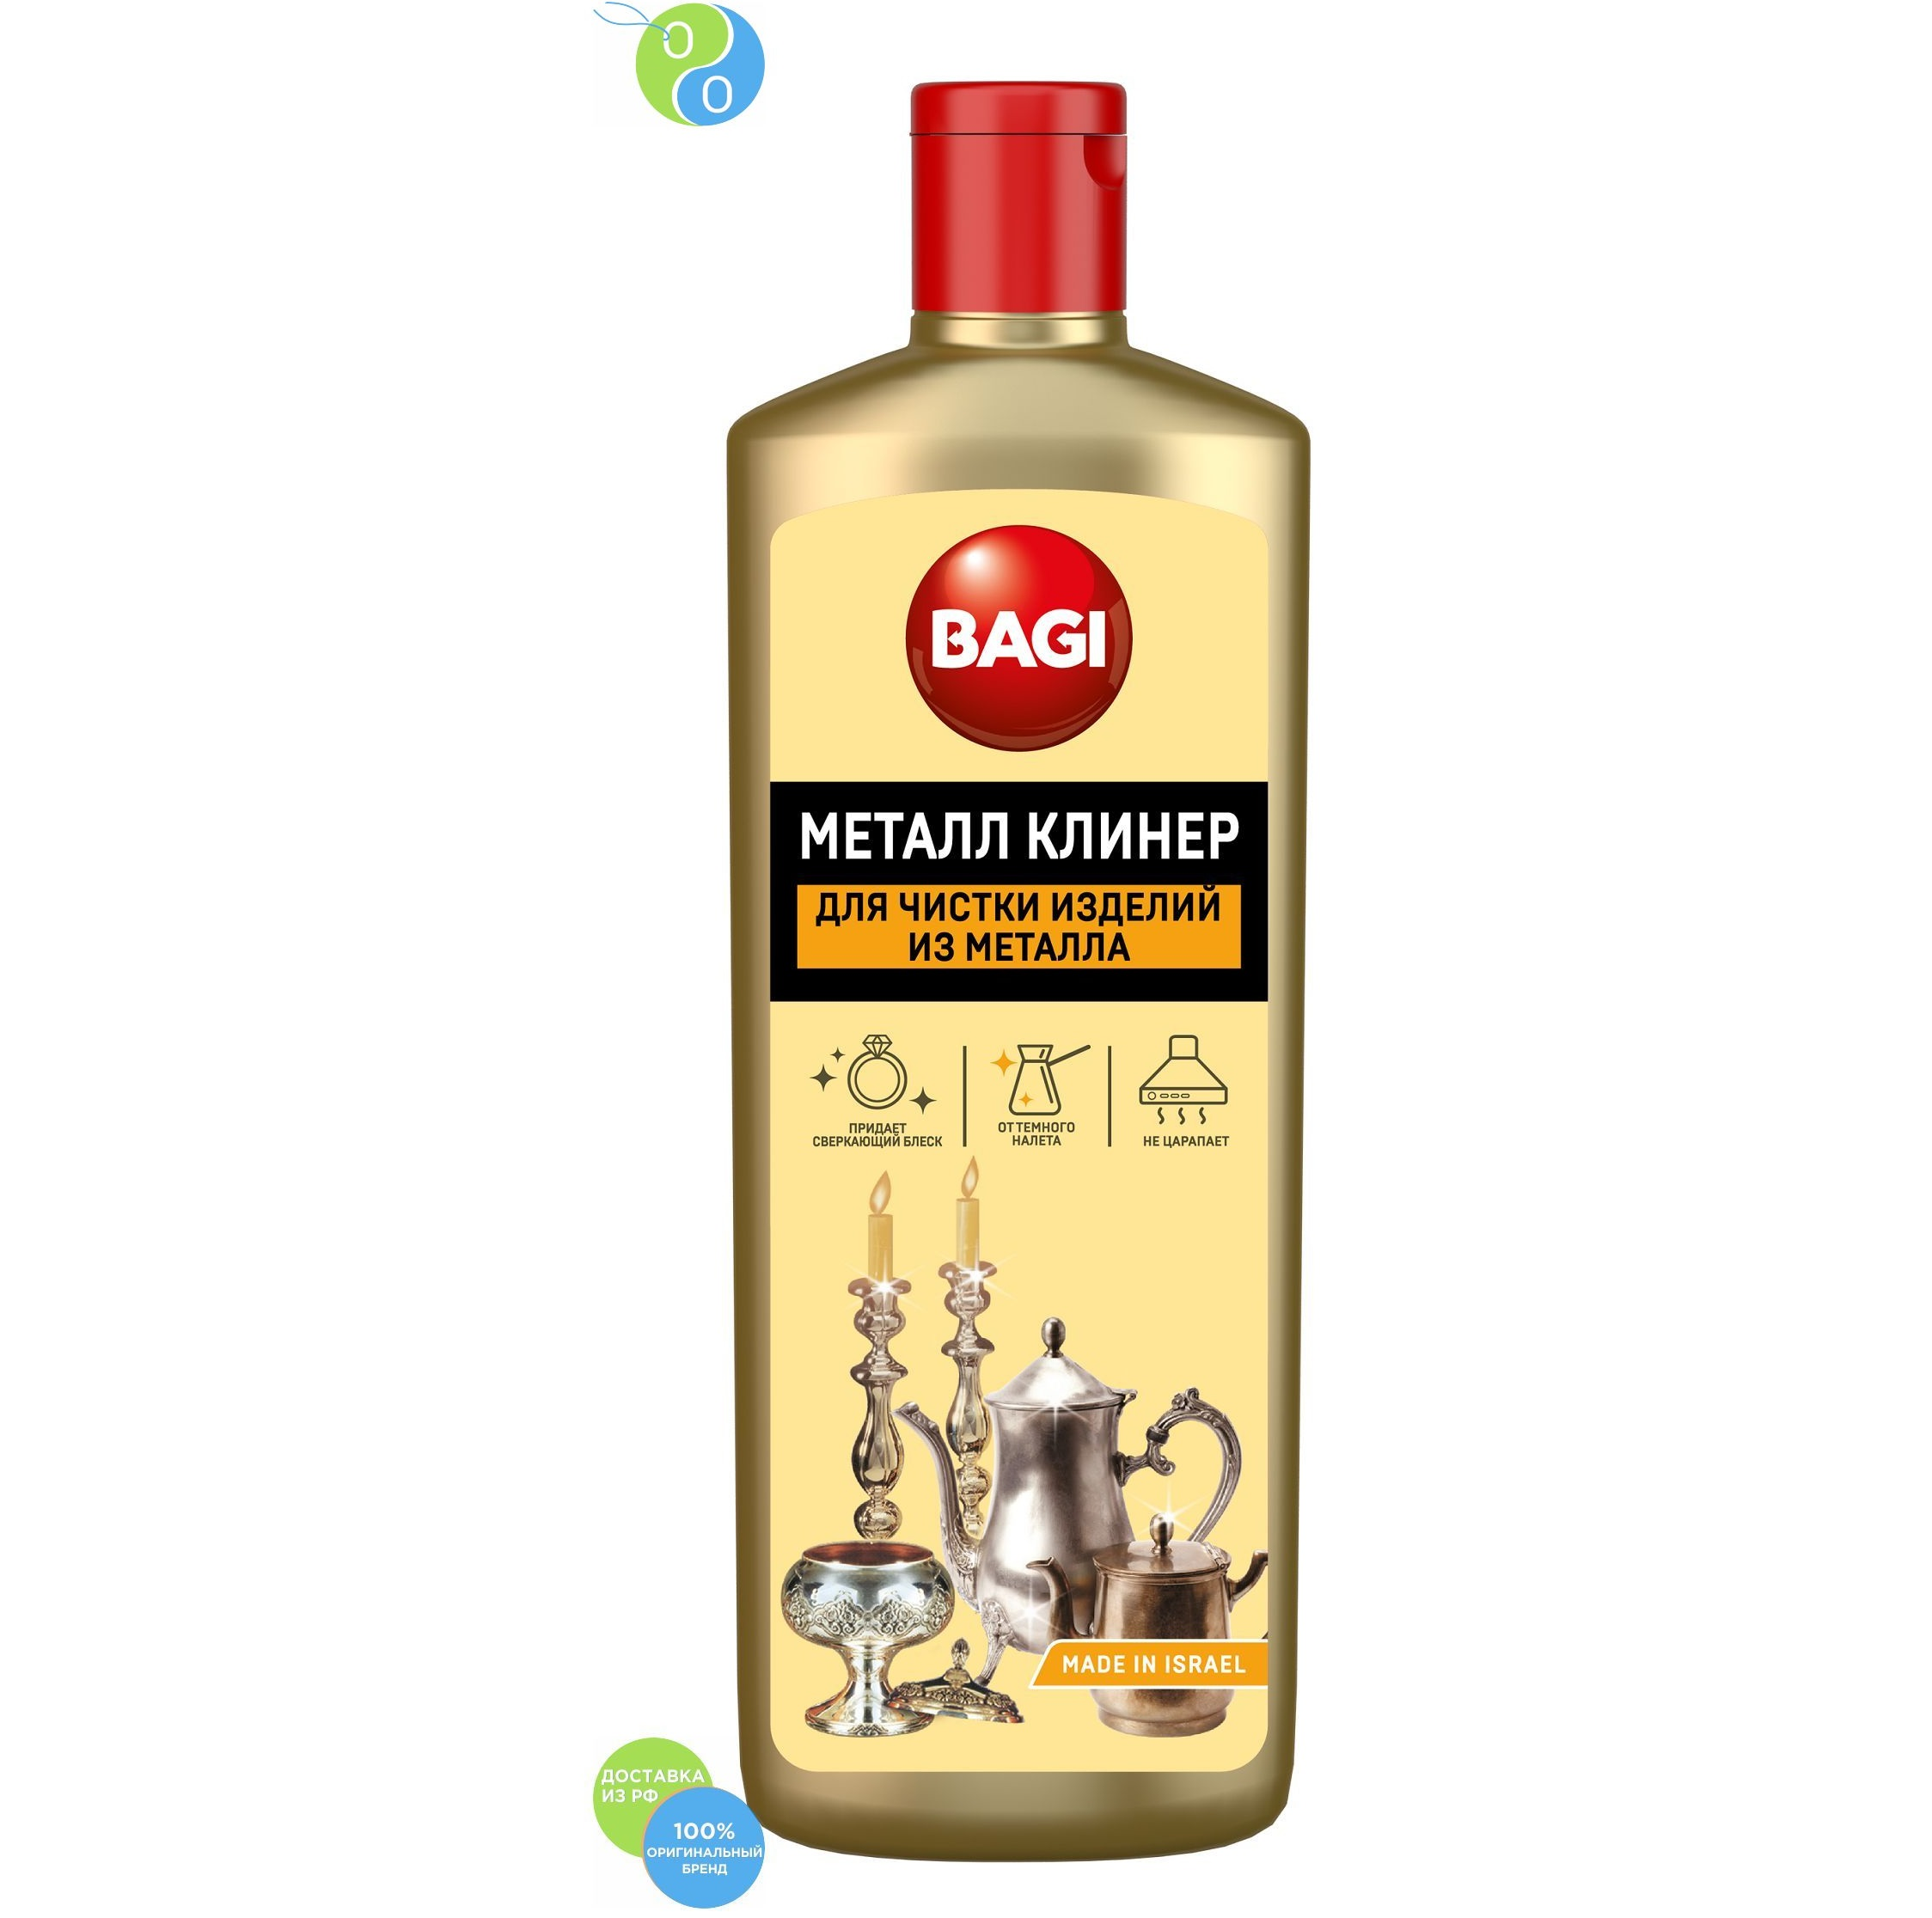 Bagi Metal Cleaner metal cleaner 350 ml,Metal Cleaner for cleaning metal products. Means for cleaning products from ferrous metals, stainless steel products from drugotsennyh metals - nickel silver, silver, copper, bra